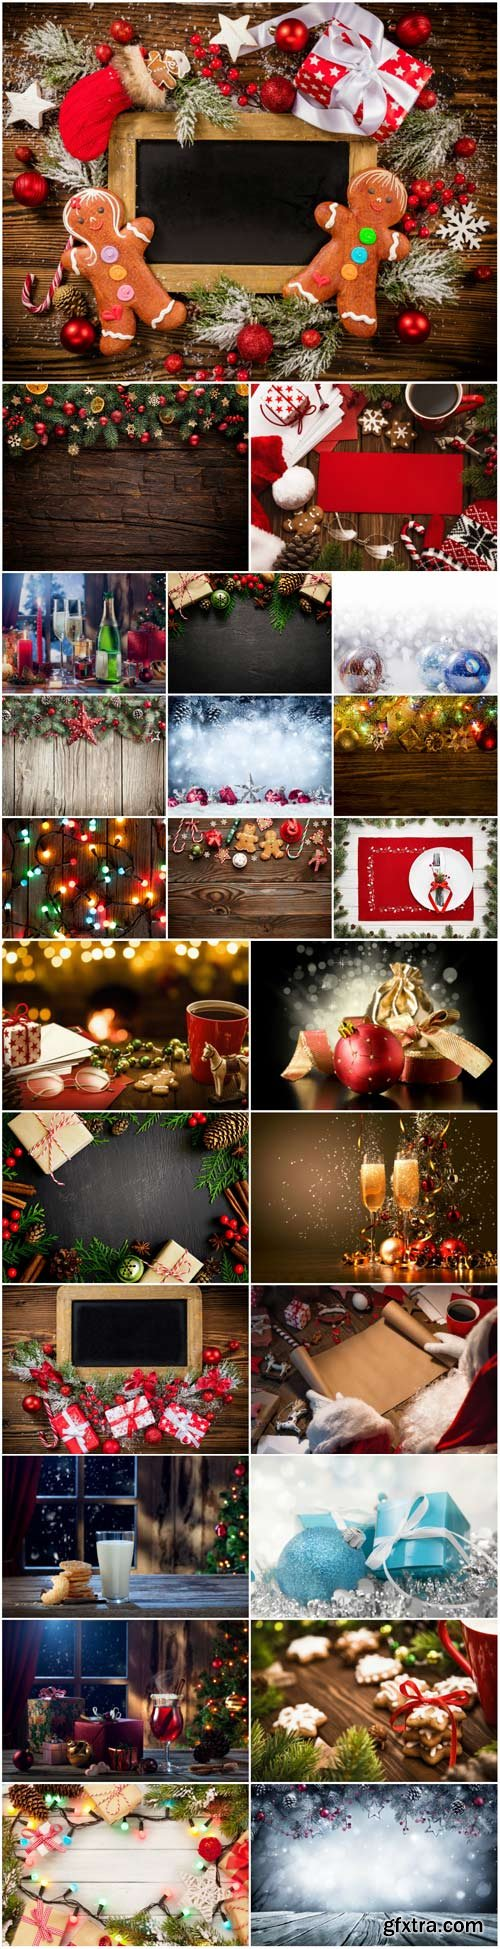 New Year and Christmas stock photos №55